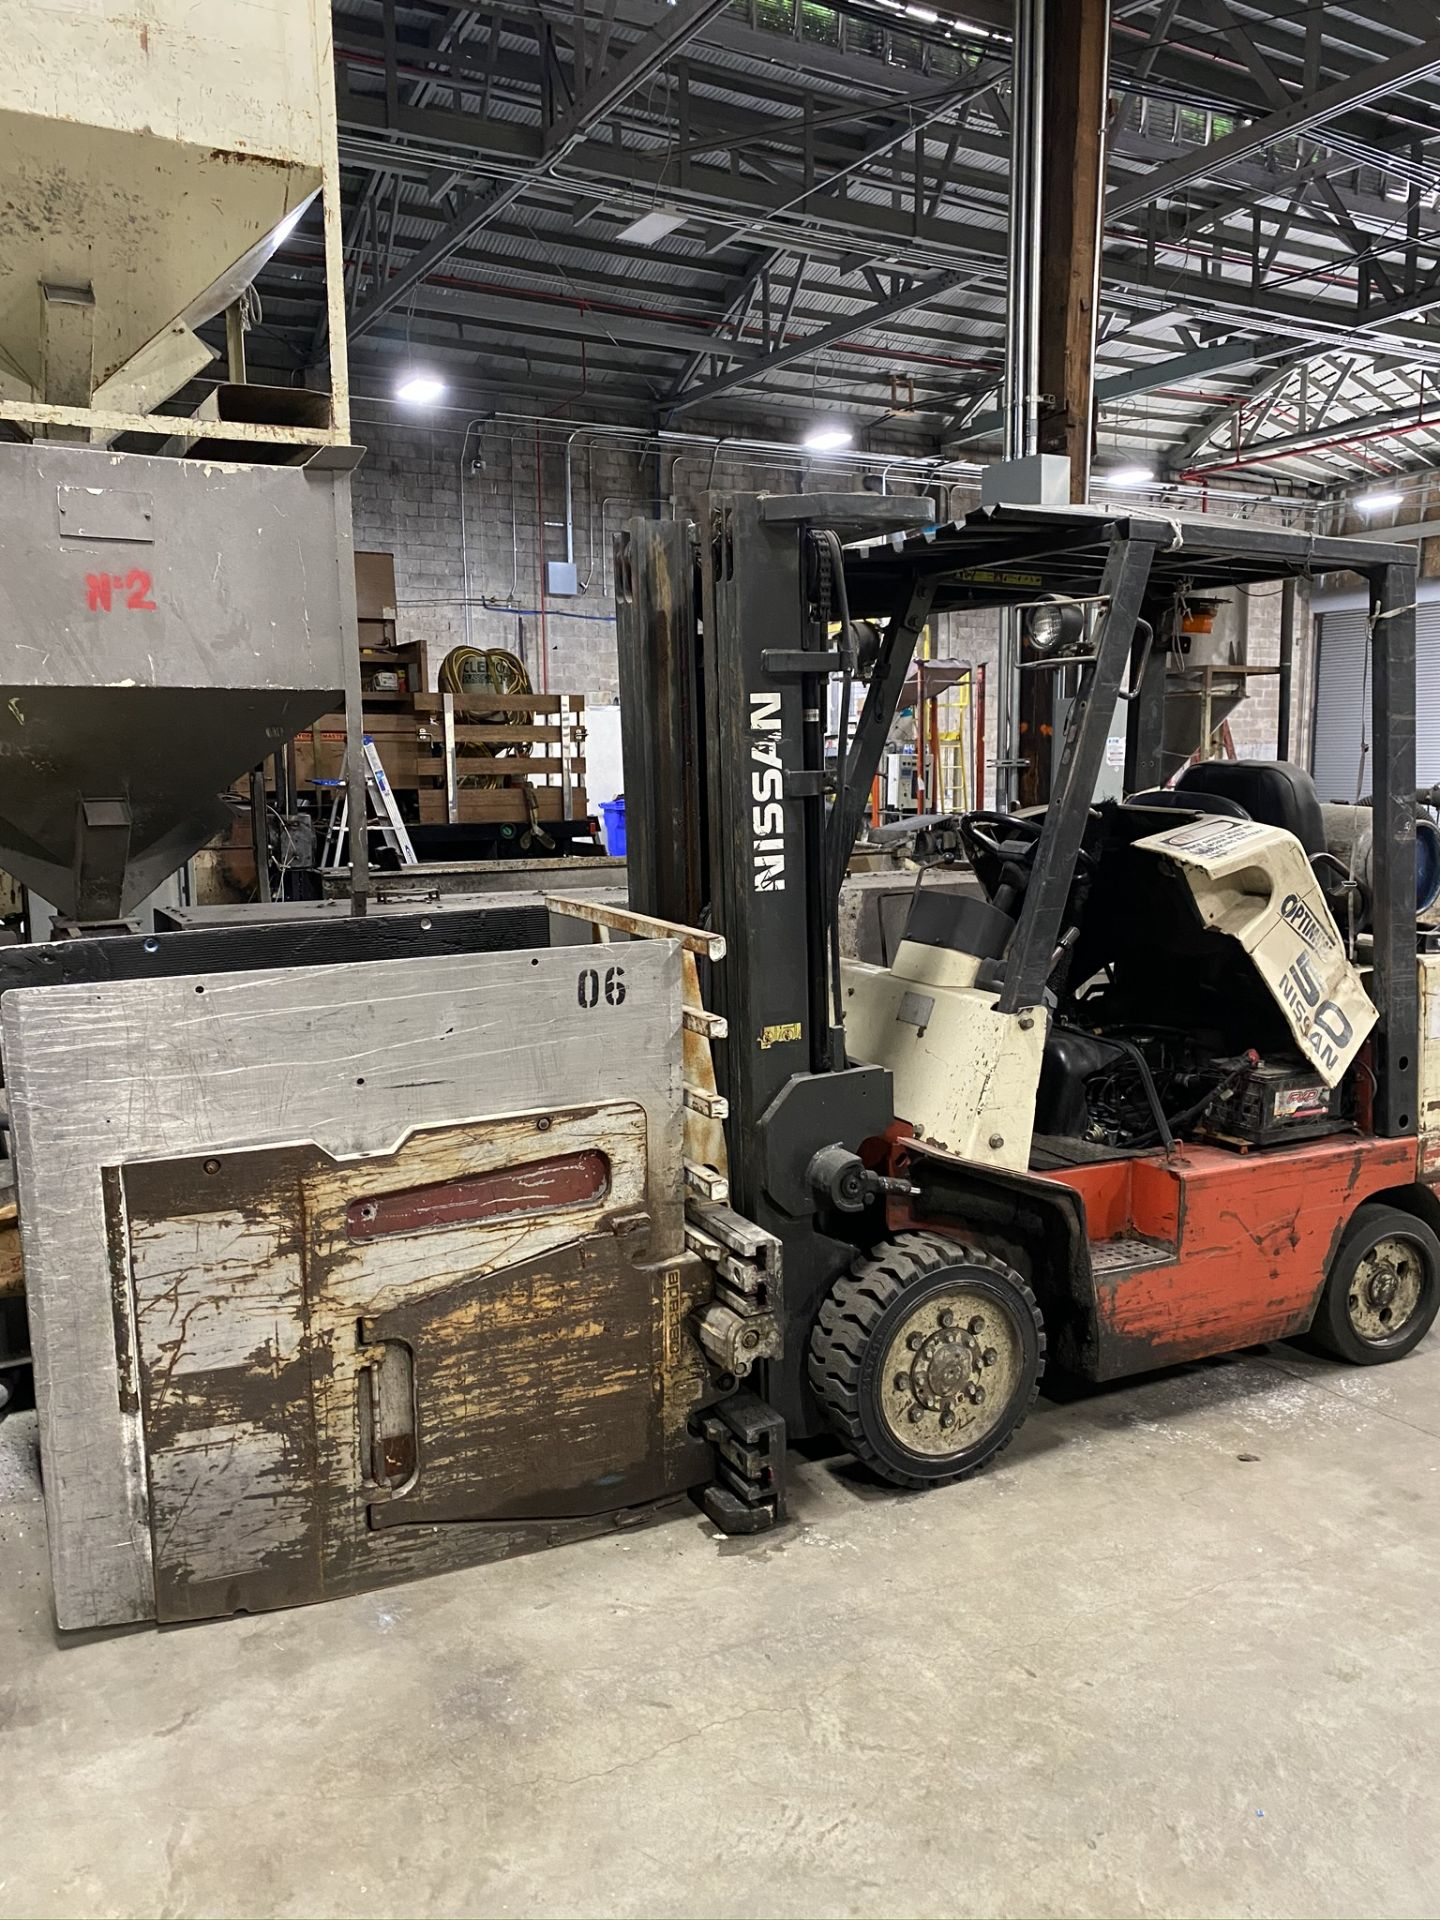 Lot 0C - VIEW OF FORKLIFTS